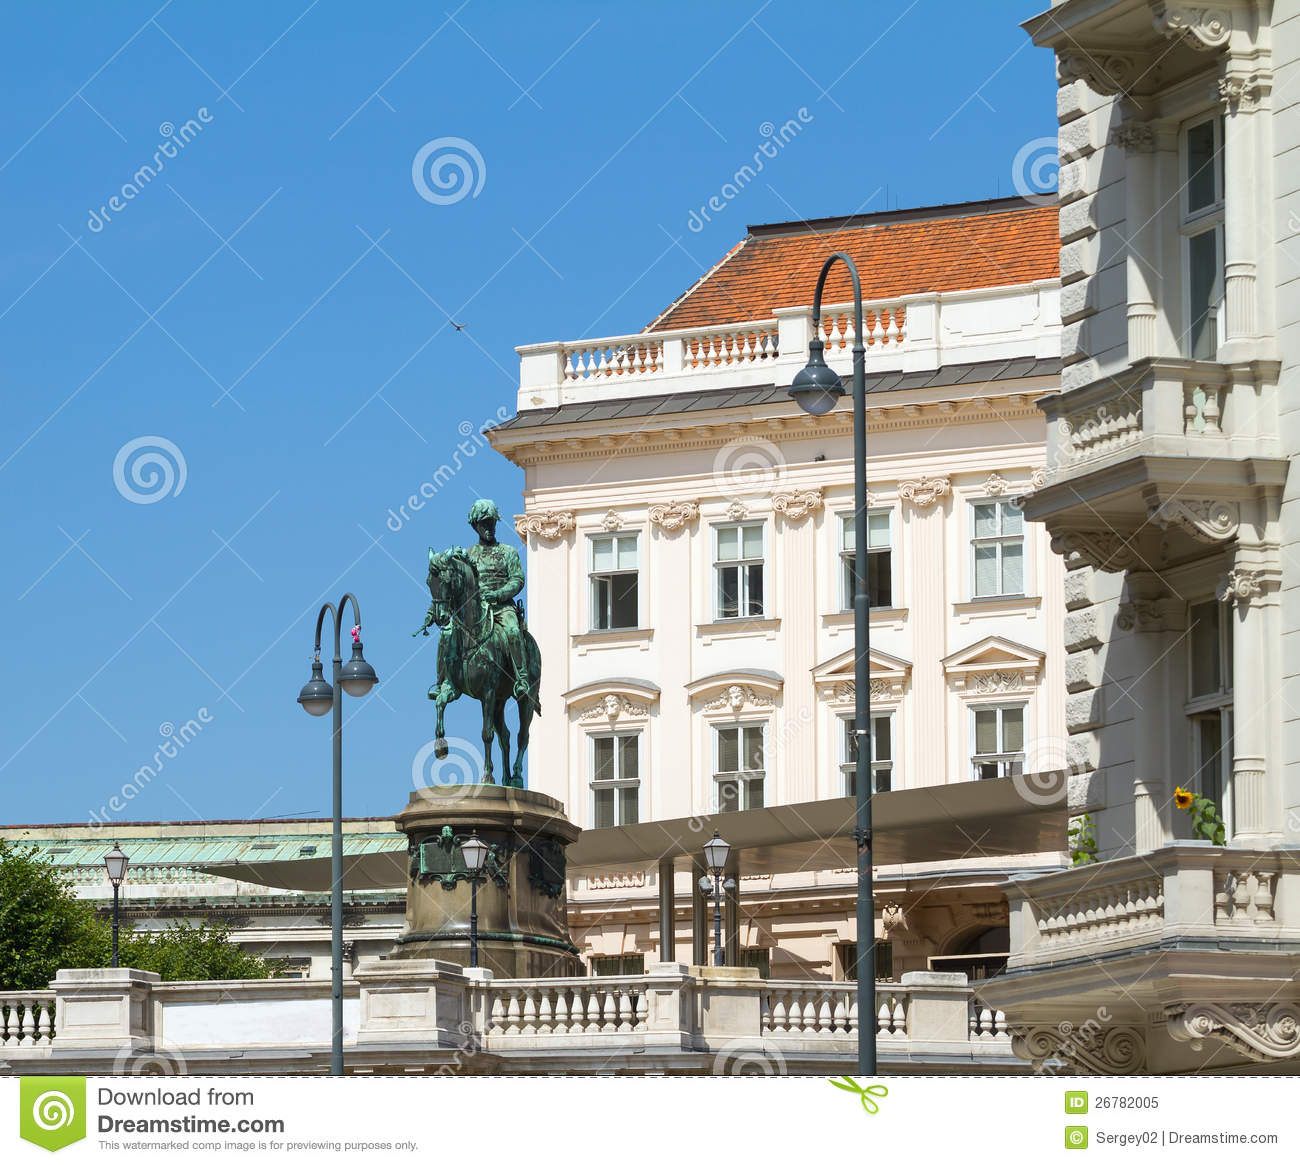 Architecture of vienna royalty free stock photo image for Architecture vienne